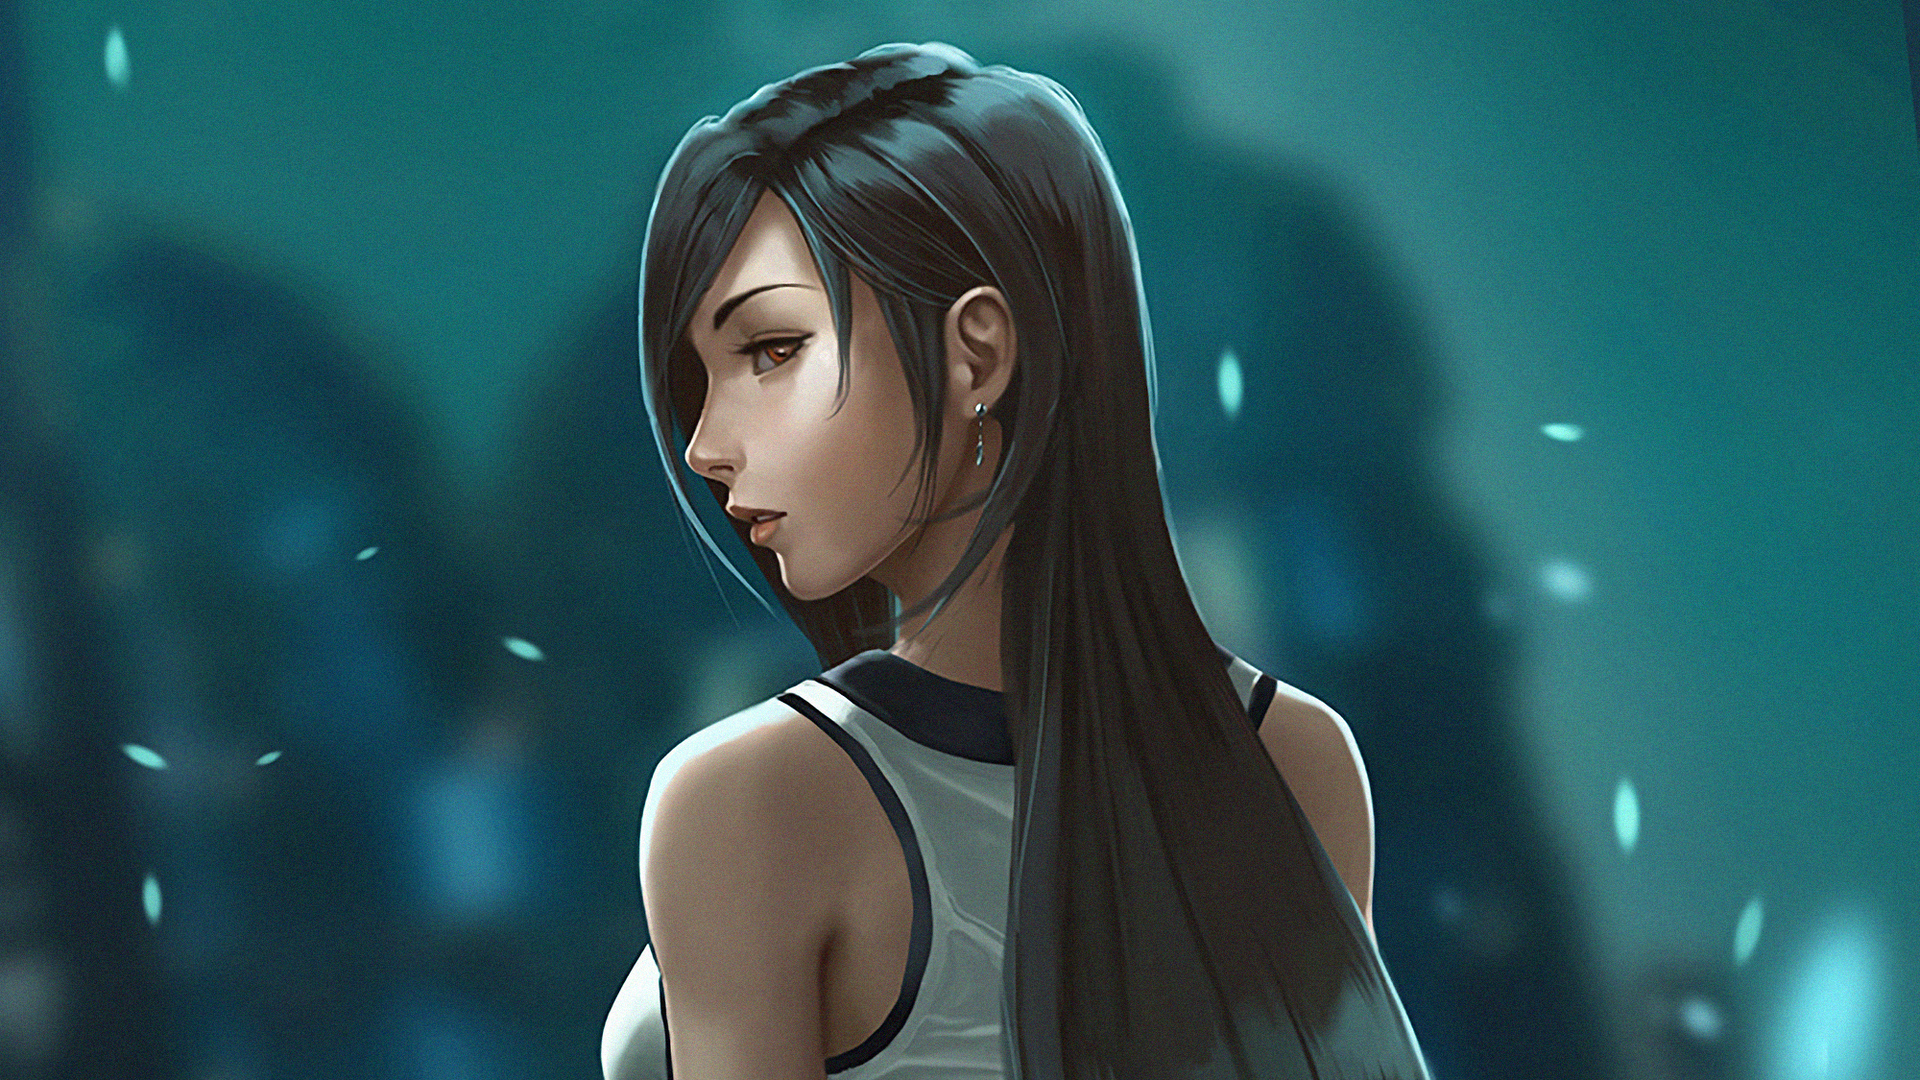 1920x1080 Tifa Lockhart Digital Art Laptop Full Hd 1080p Hd